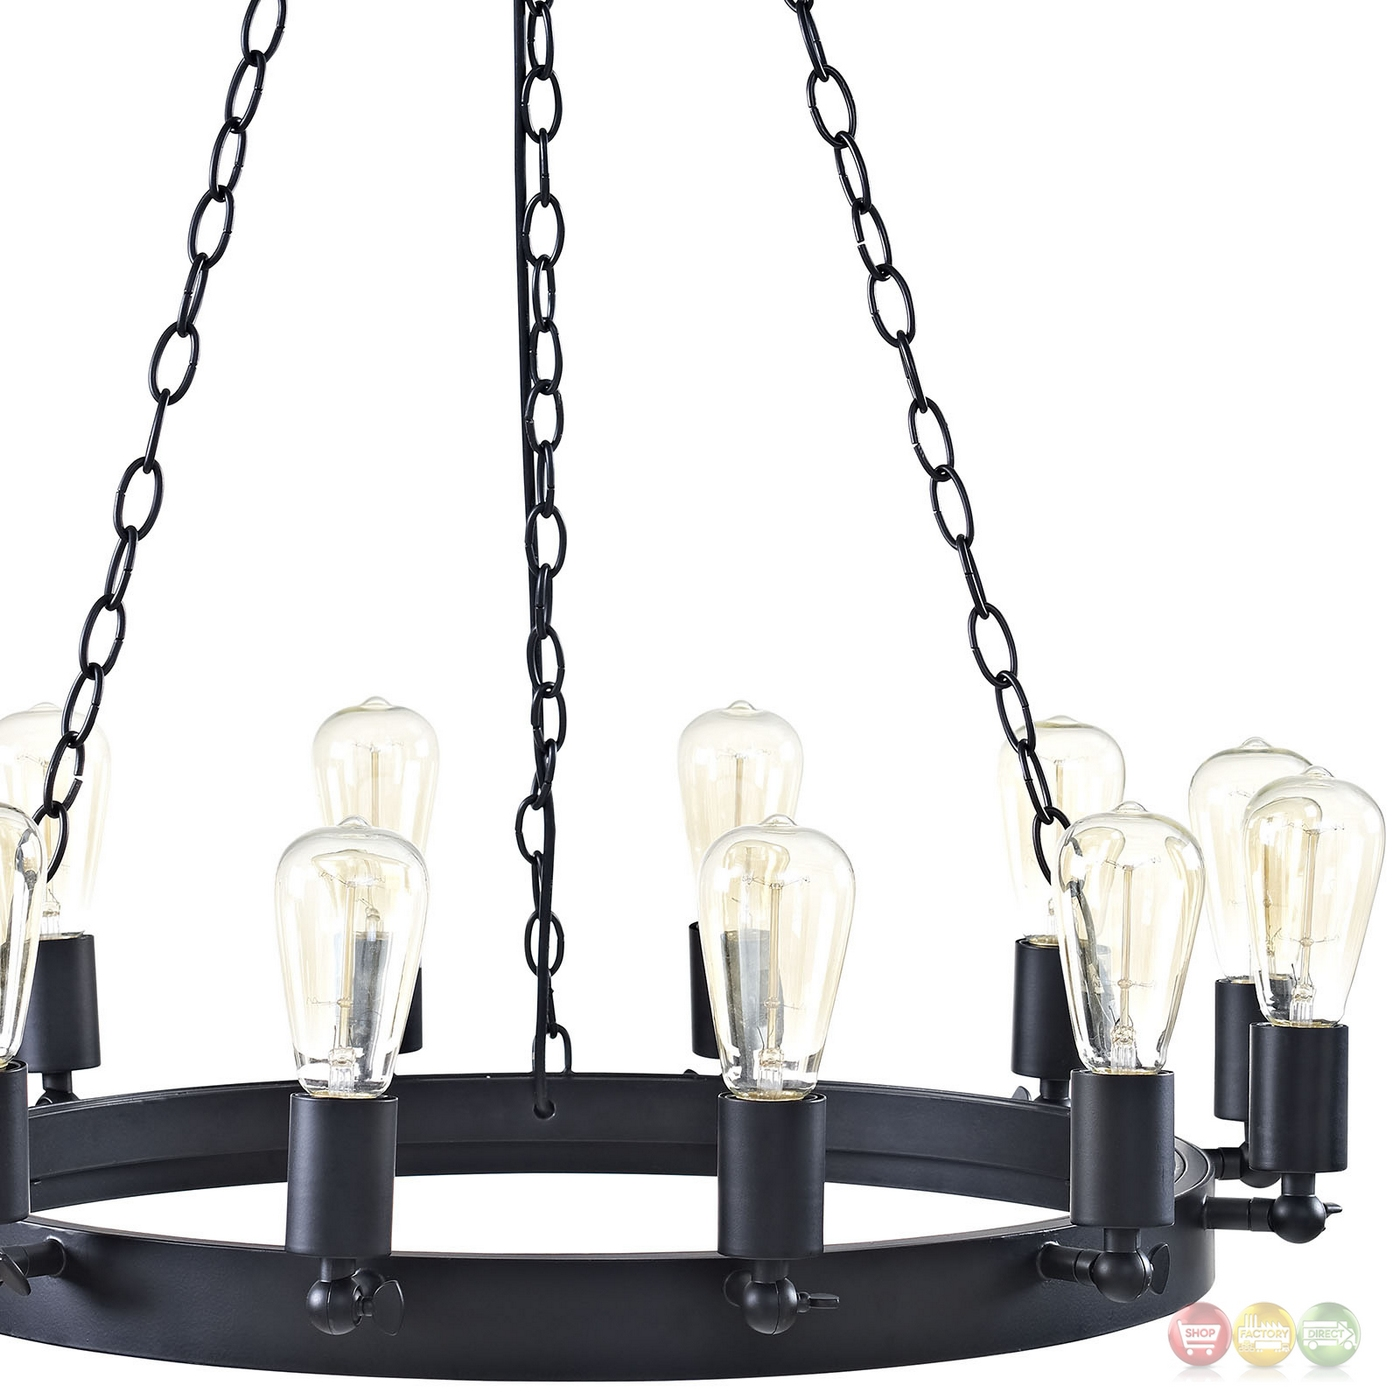 Teleport Industrial 29 Quot Suspension Style 12 Bulb